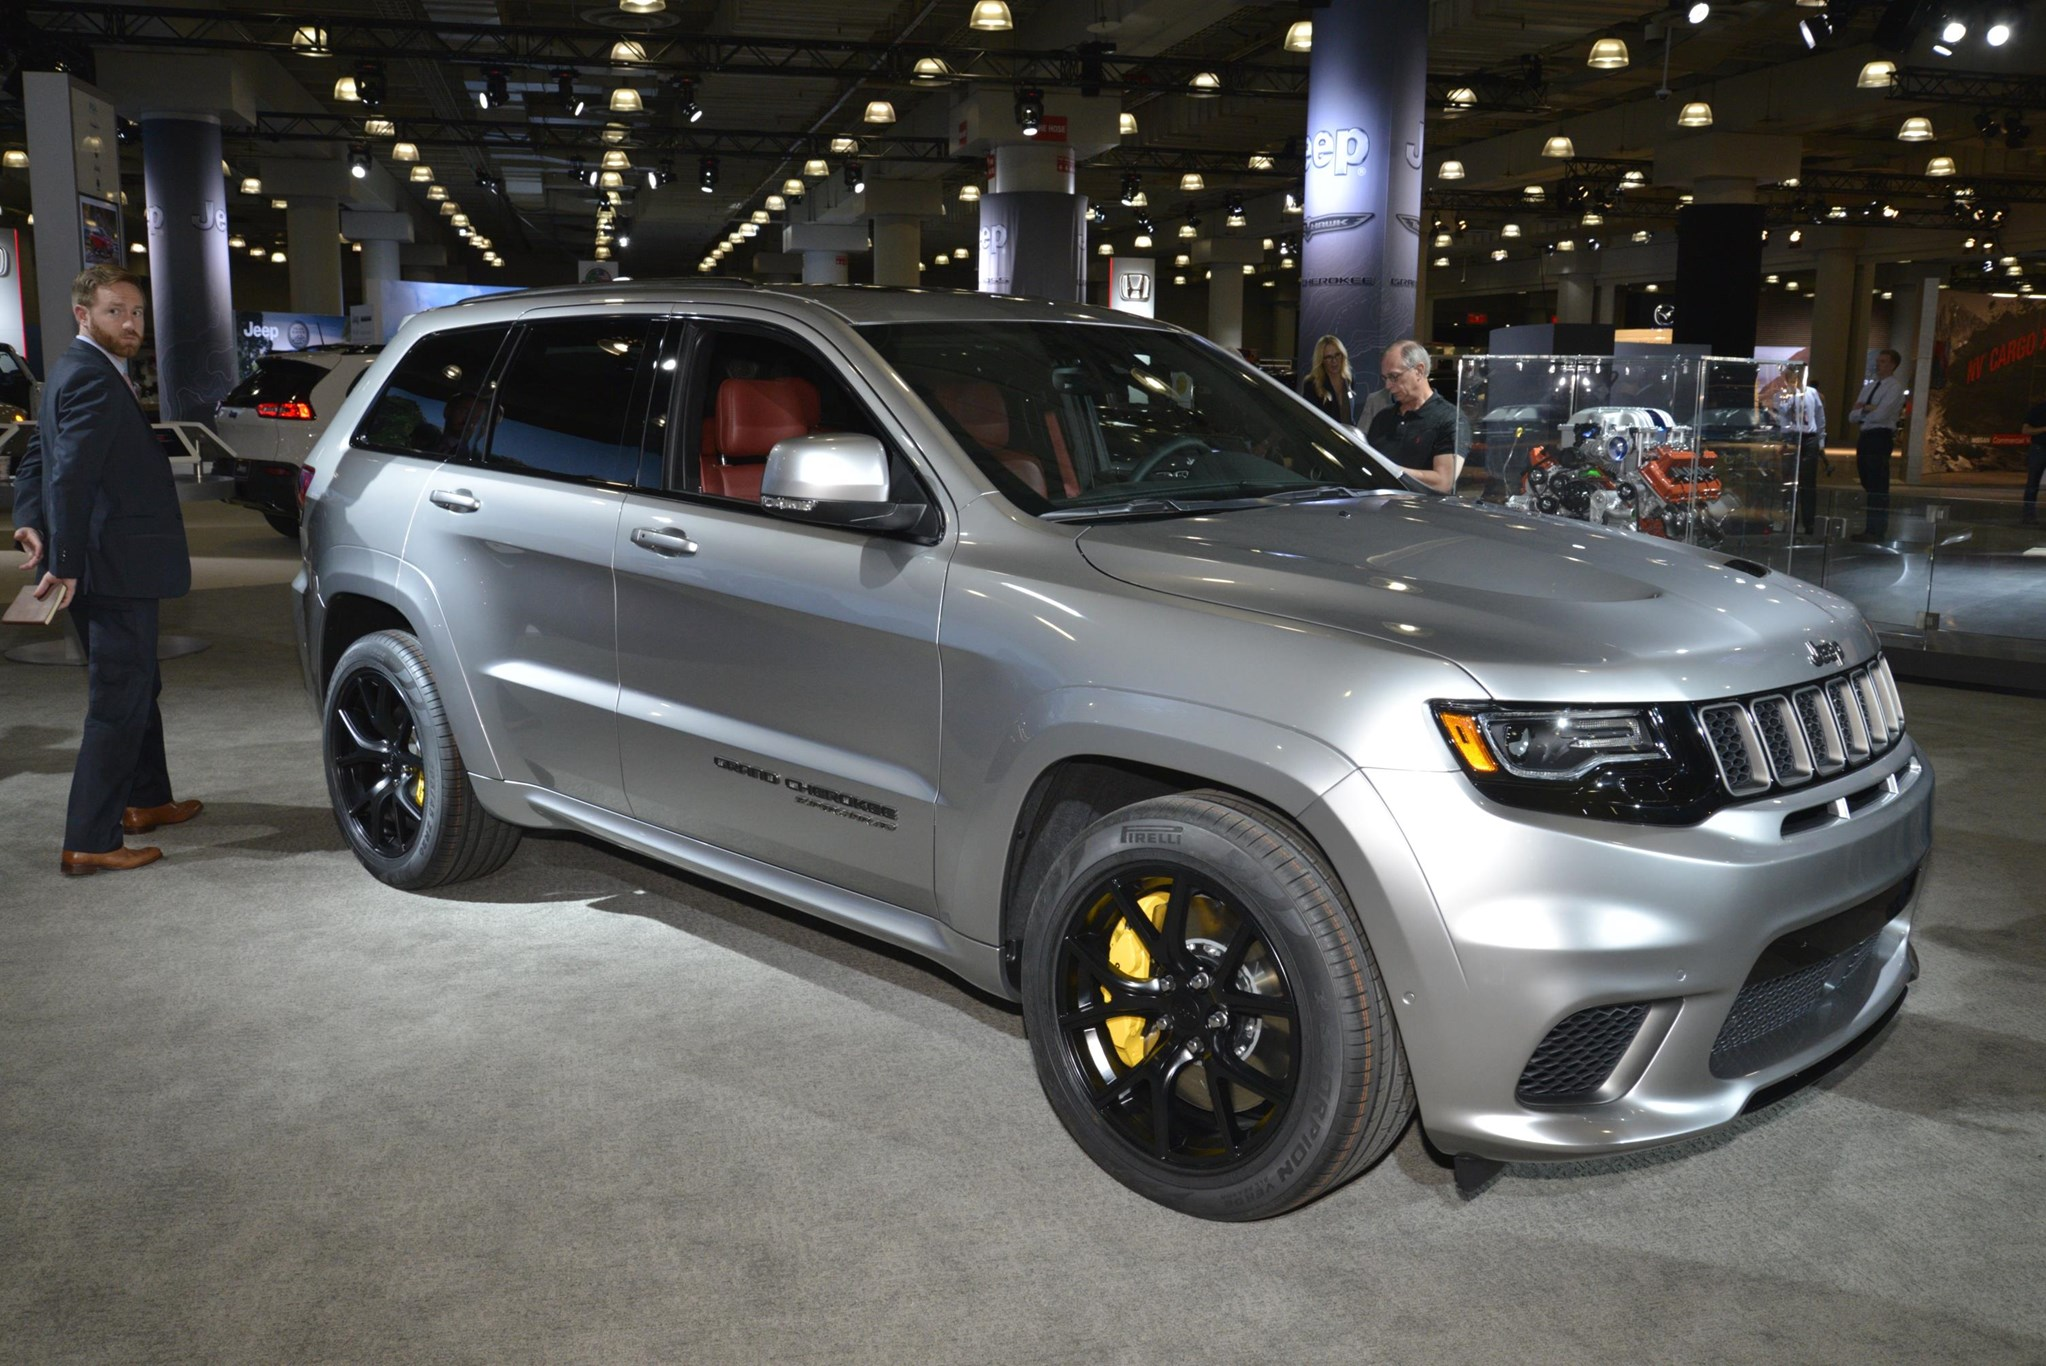 extreme machine jeep grand cherokee trackhawk the most powerful suv ever by car magazine. Black Bedroom Furniture Sets. Home Design Ideas